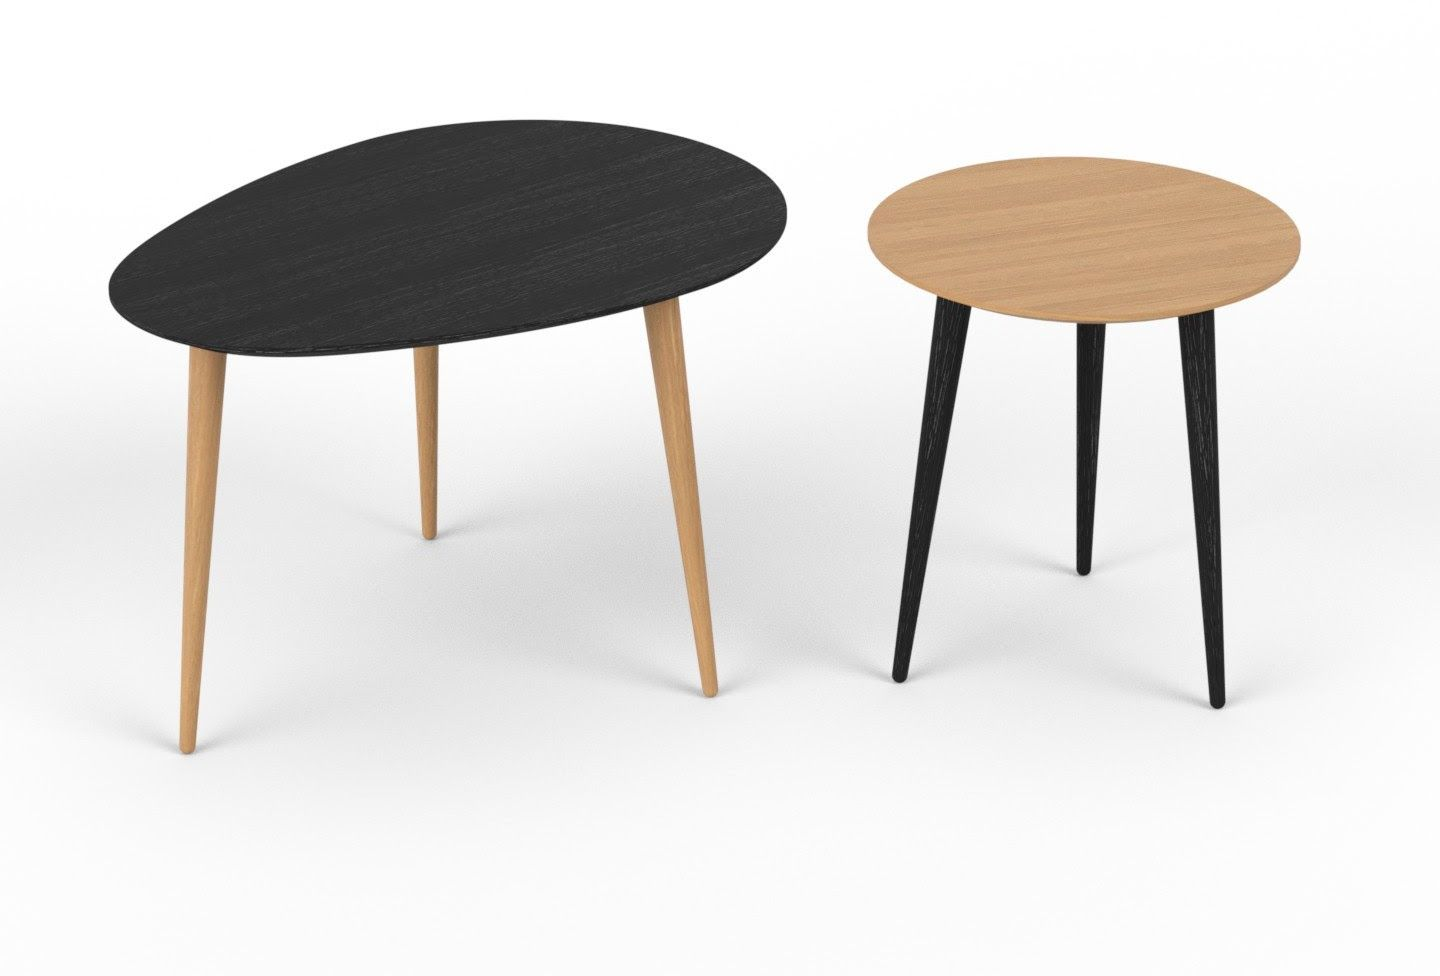 Mycs Coffee Tables In Natural Colours Mycs Makeityours Furnituredesign Wohnzimmertische